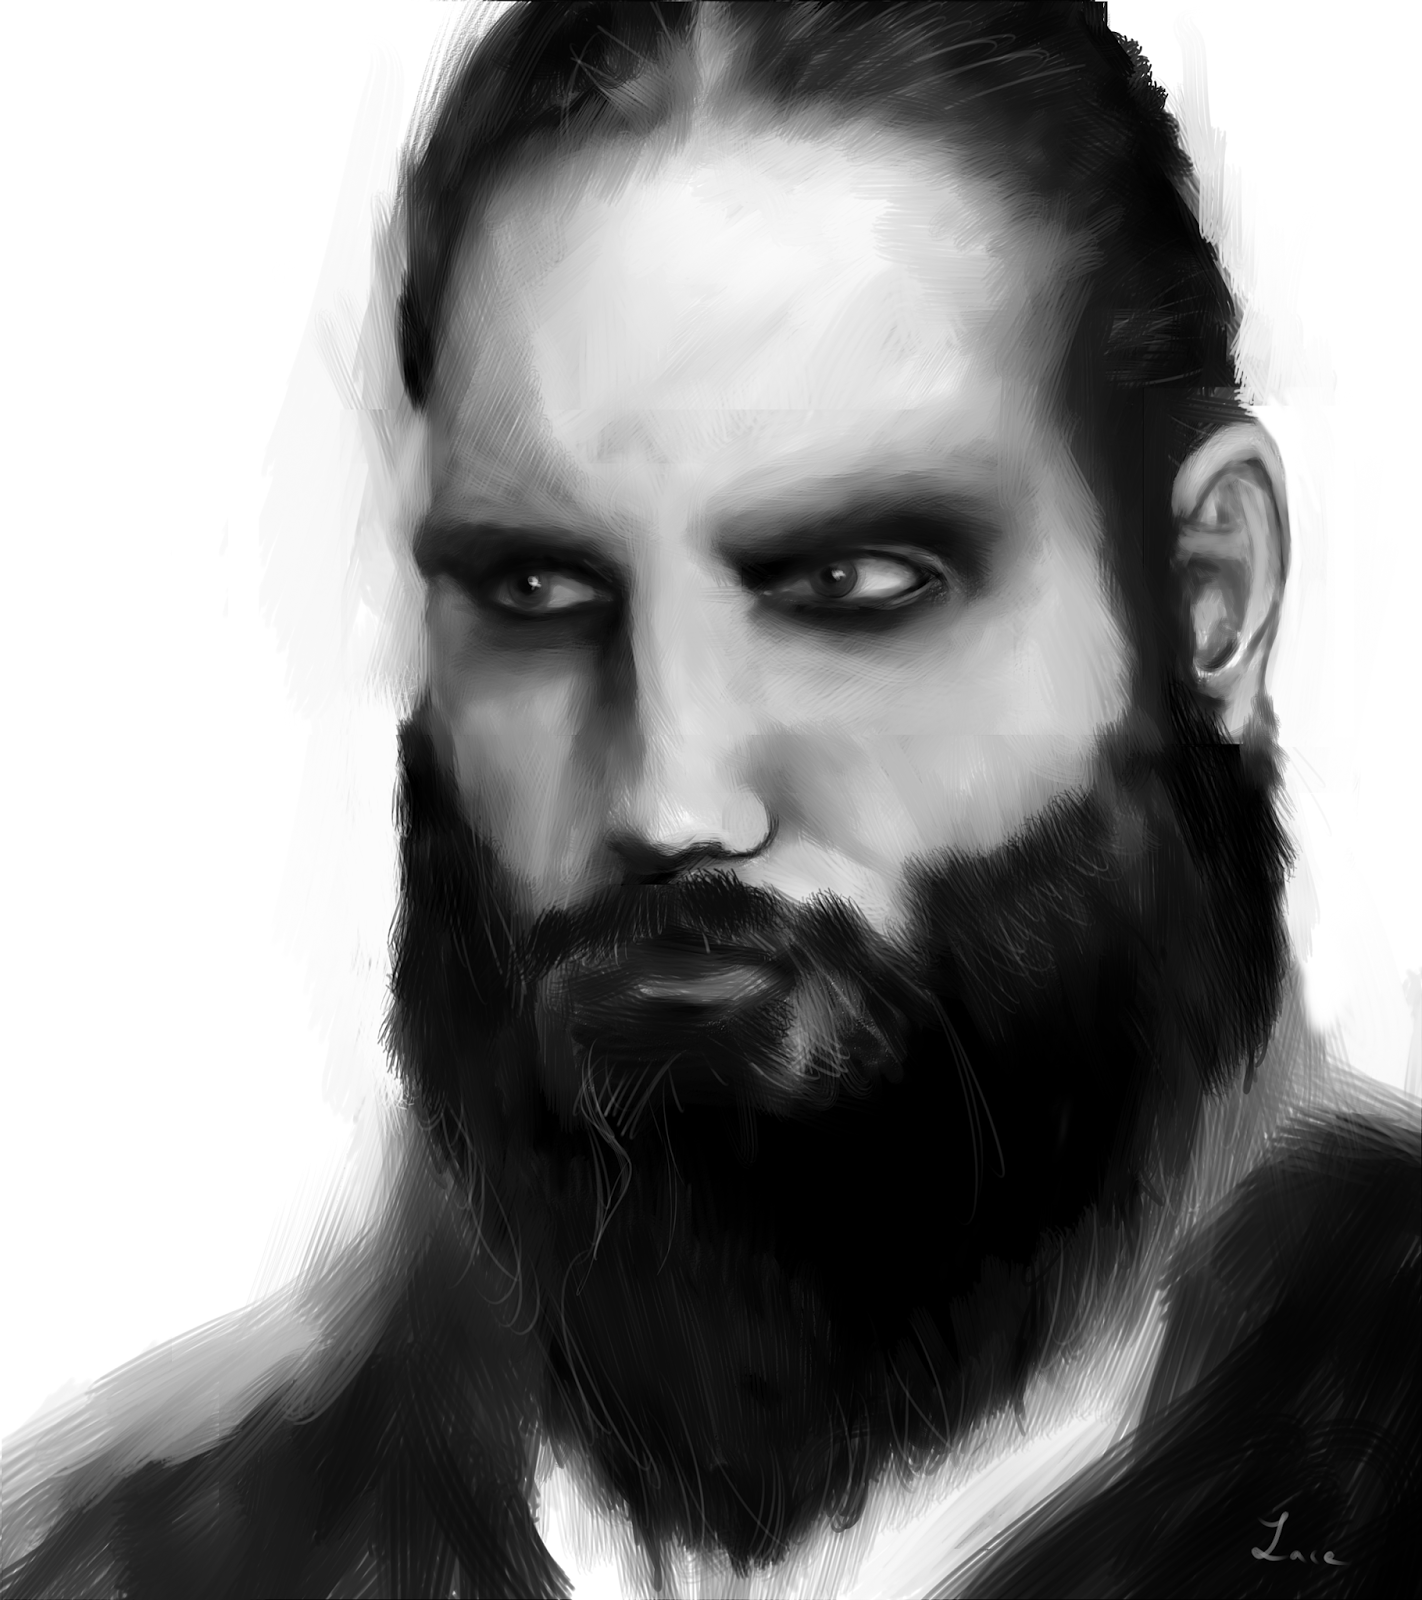 digital dessin wacom barbe homme